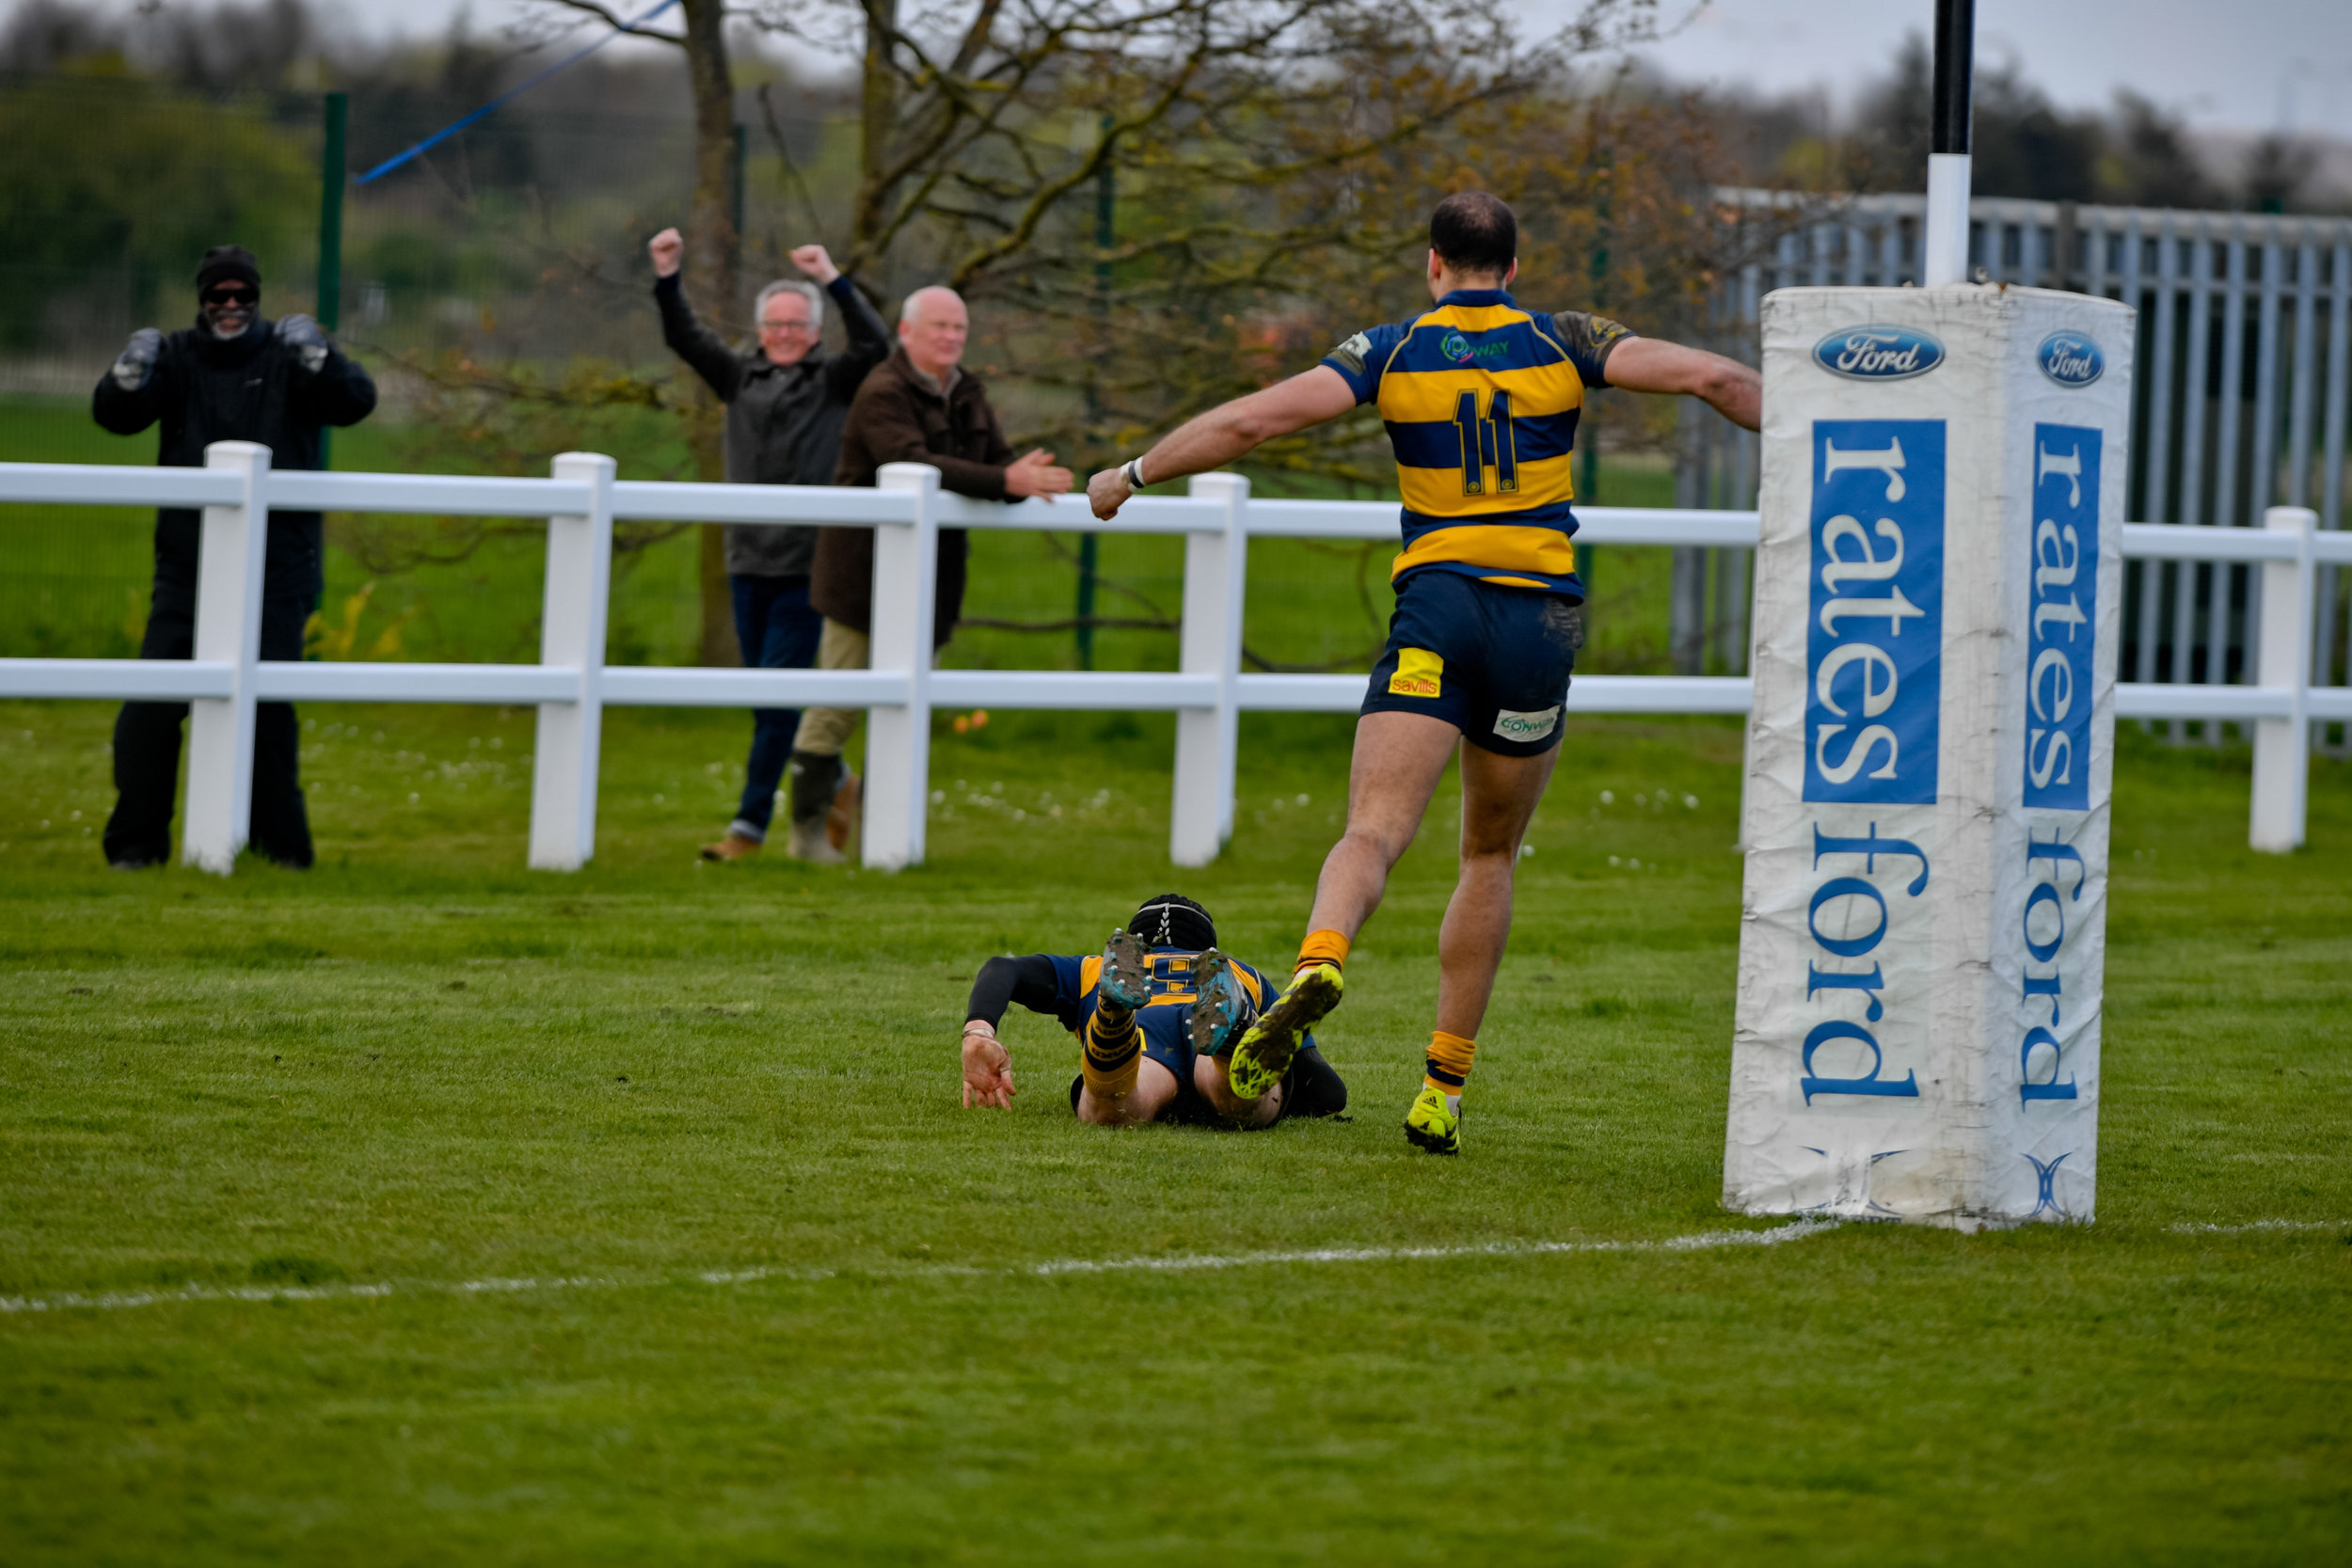 He's over! Matt Holmes goes over for his second try and Oaks third. Photo Credit: David Purday